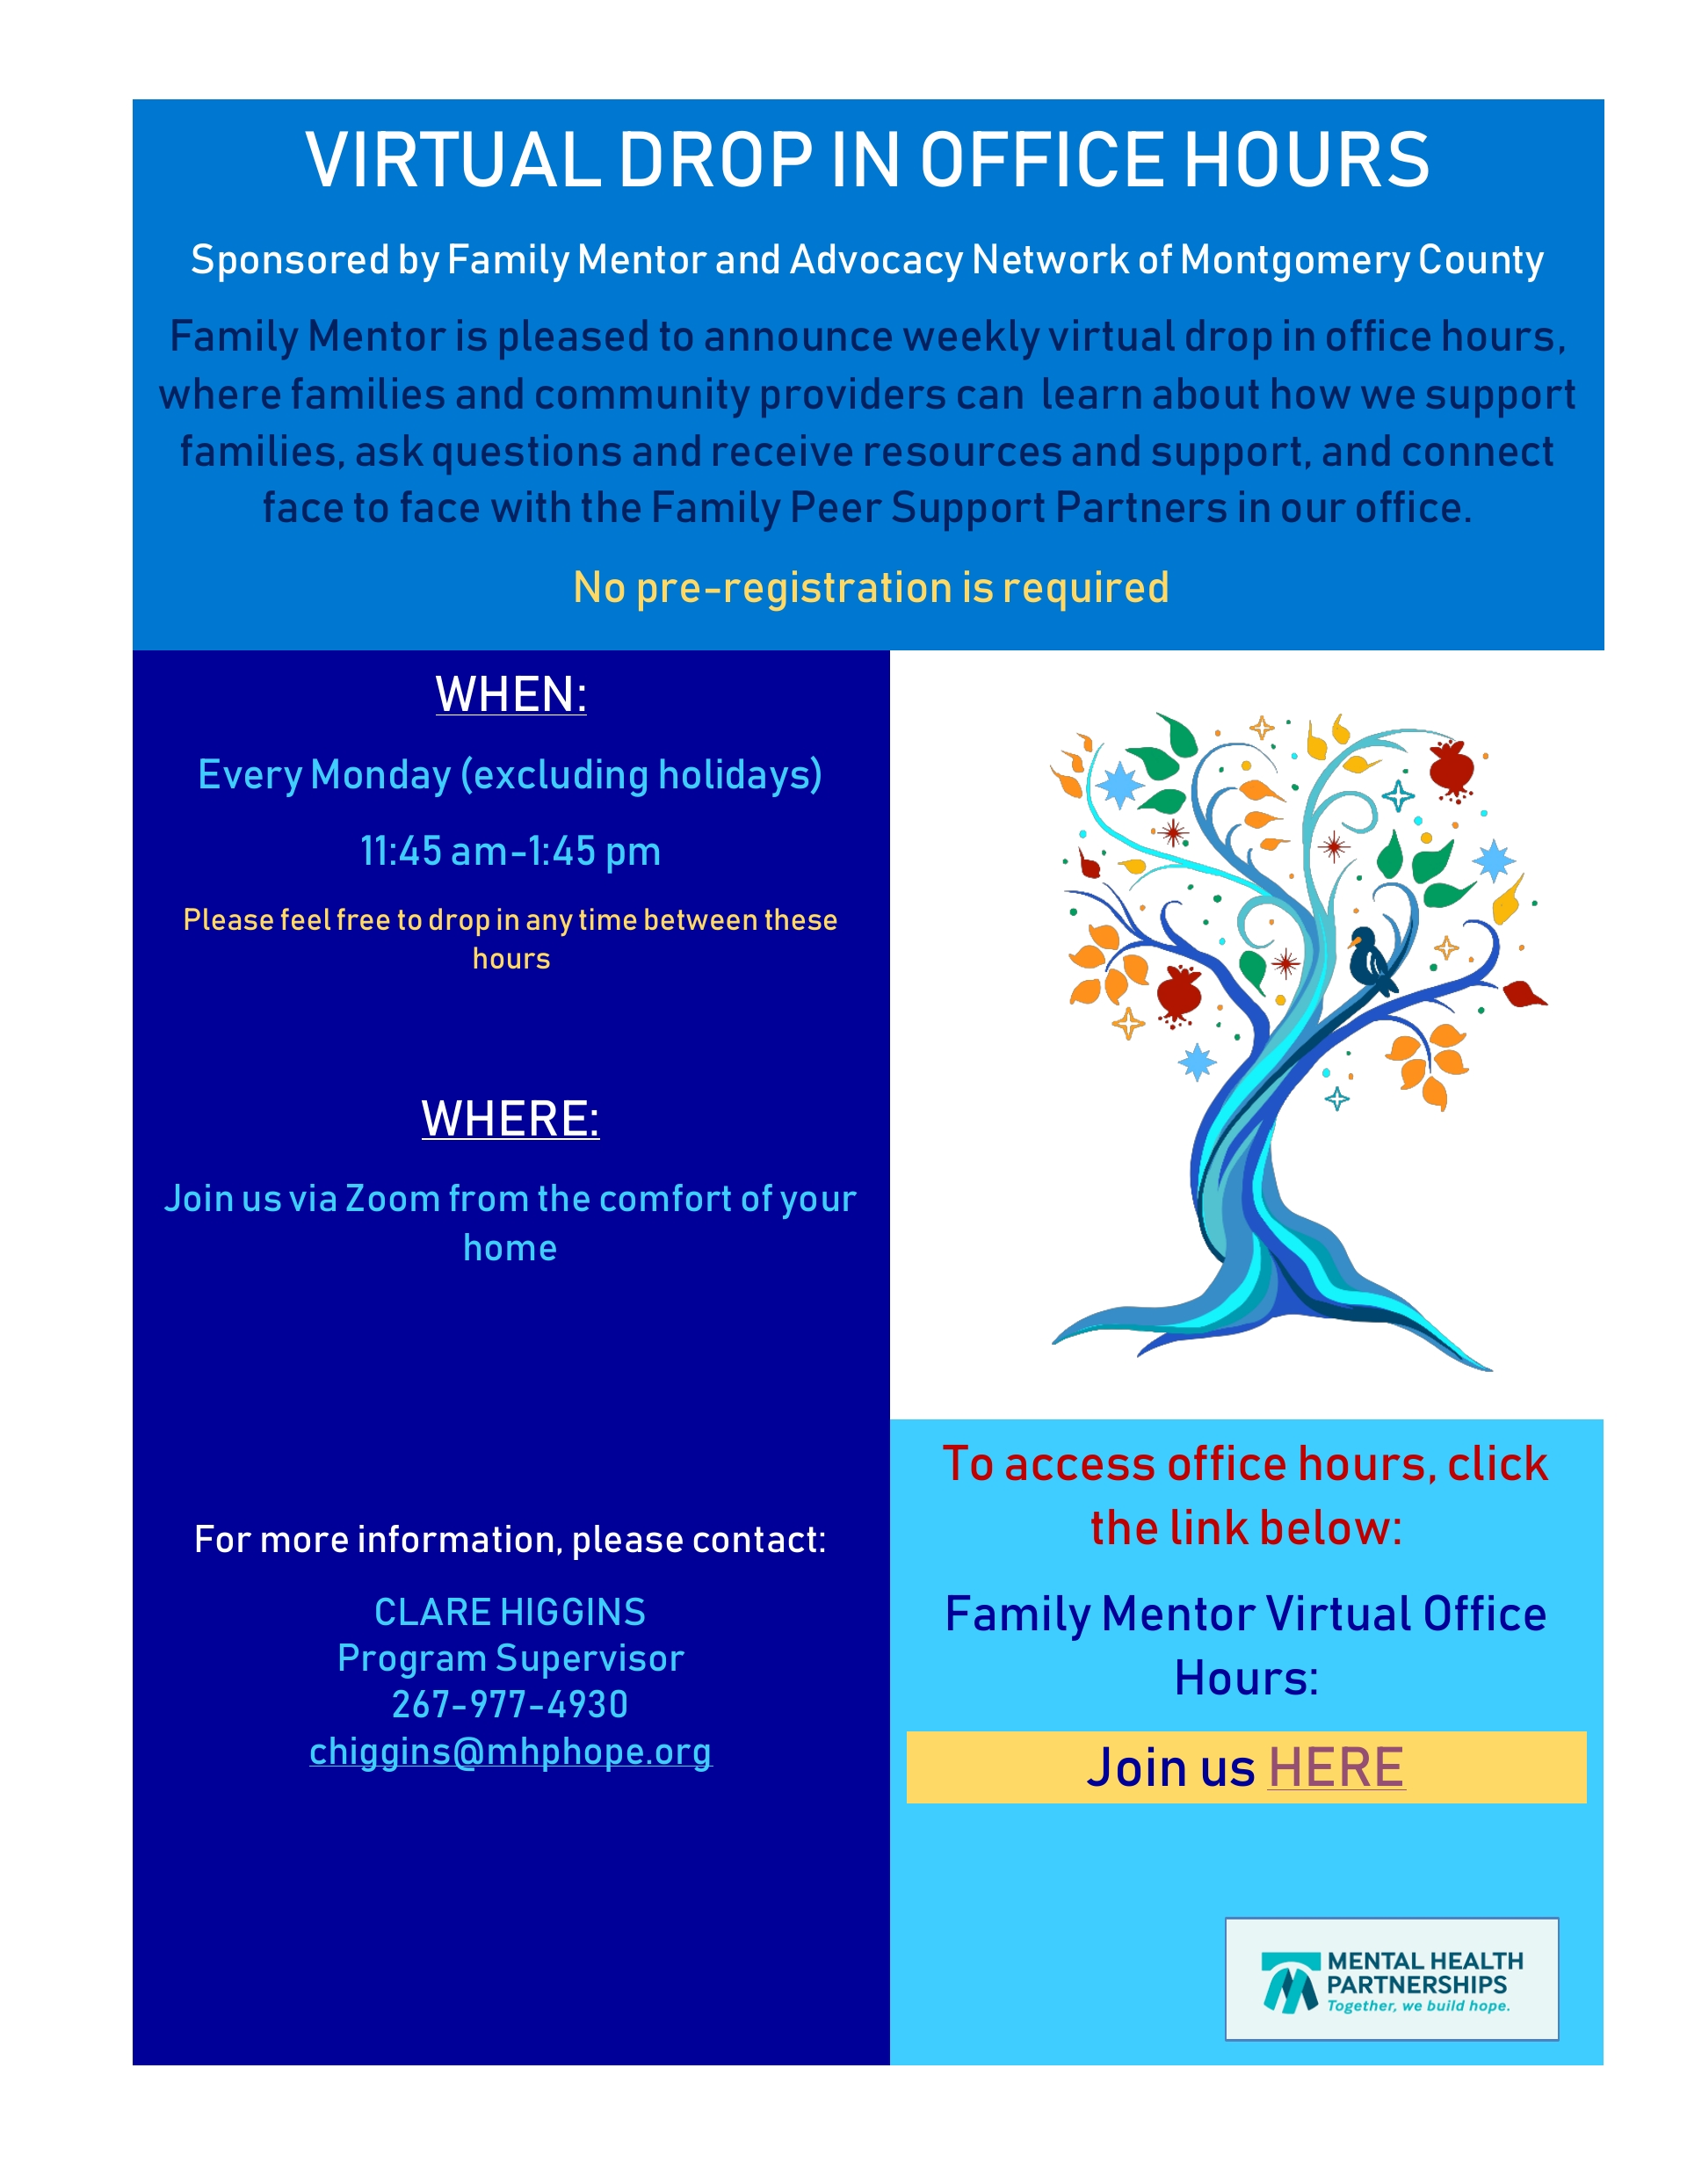 New Family Support Group & Virtual Hours for Family Mentor & Advocacy Network Montgomery County Oct.